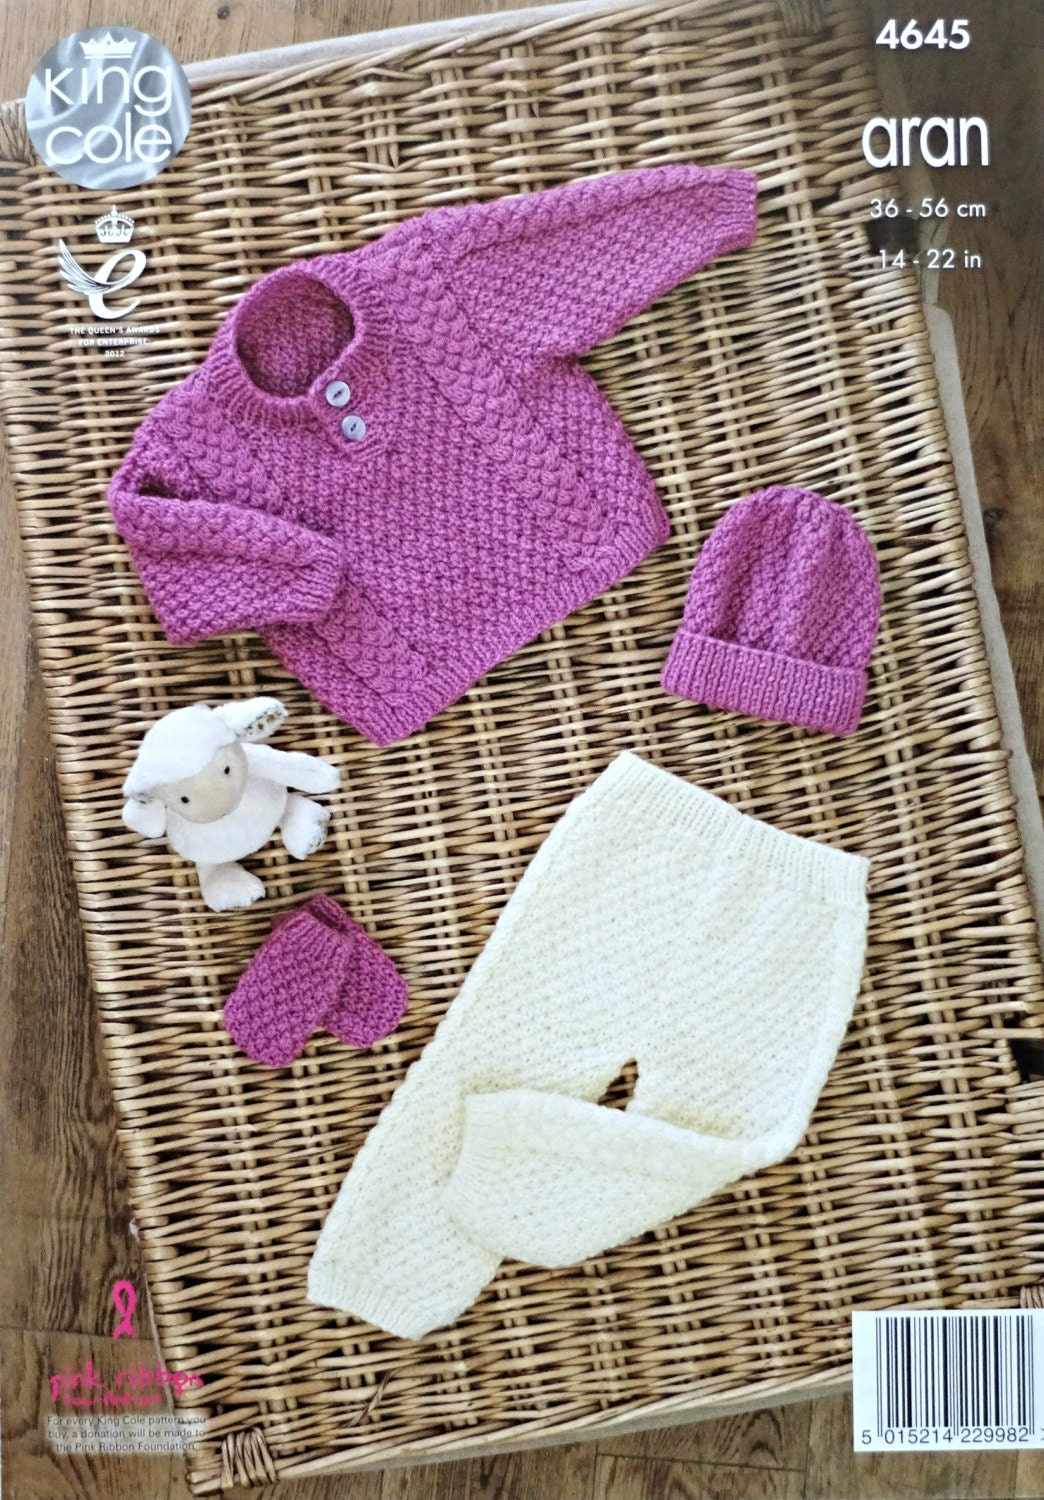 Baby Knitting Pattern K4645 Babies Cable and Moss Stitch Jumper Trousers Mitt...